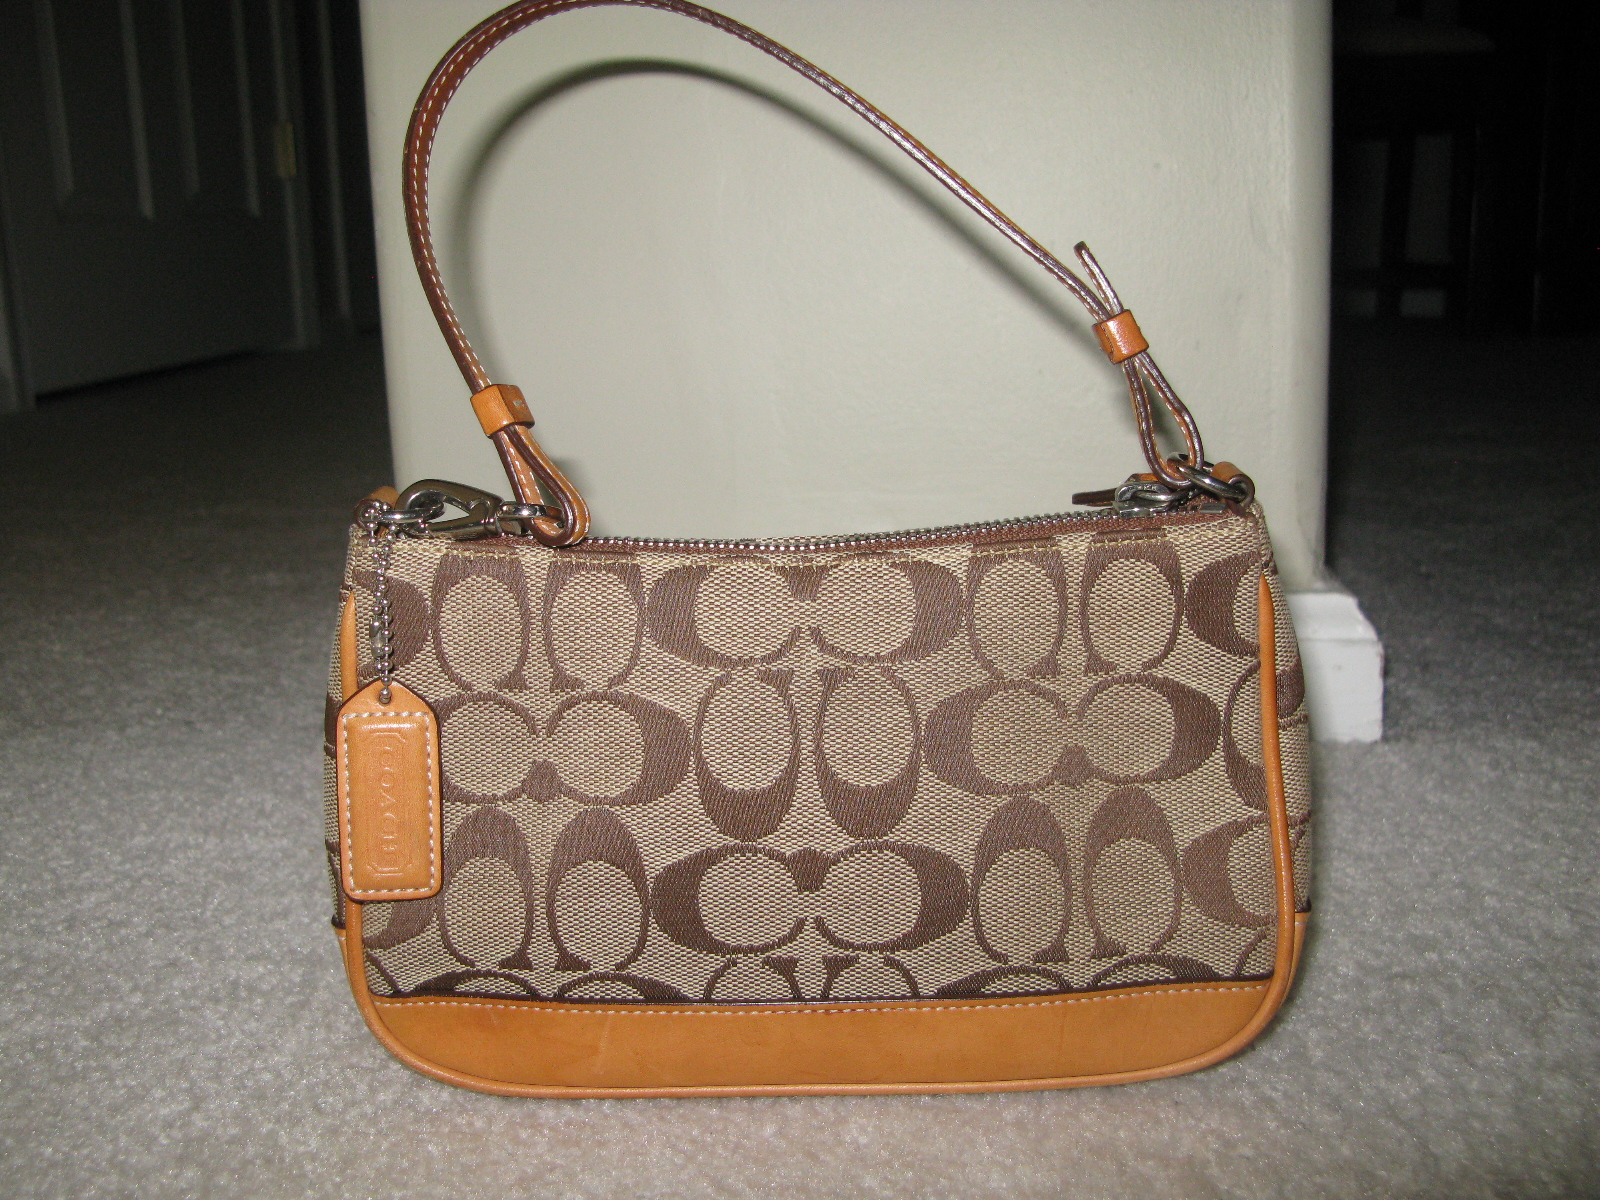 Purse : File:Brown coach purse.JPG - Wikimedia Commons